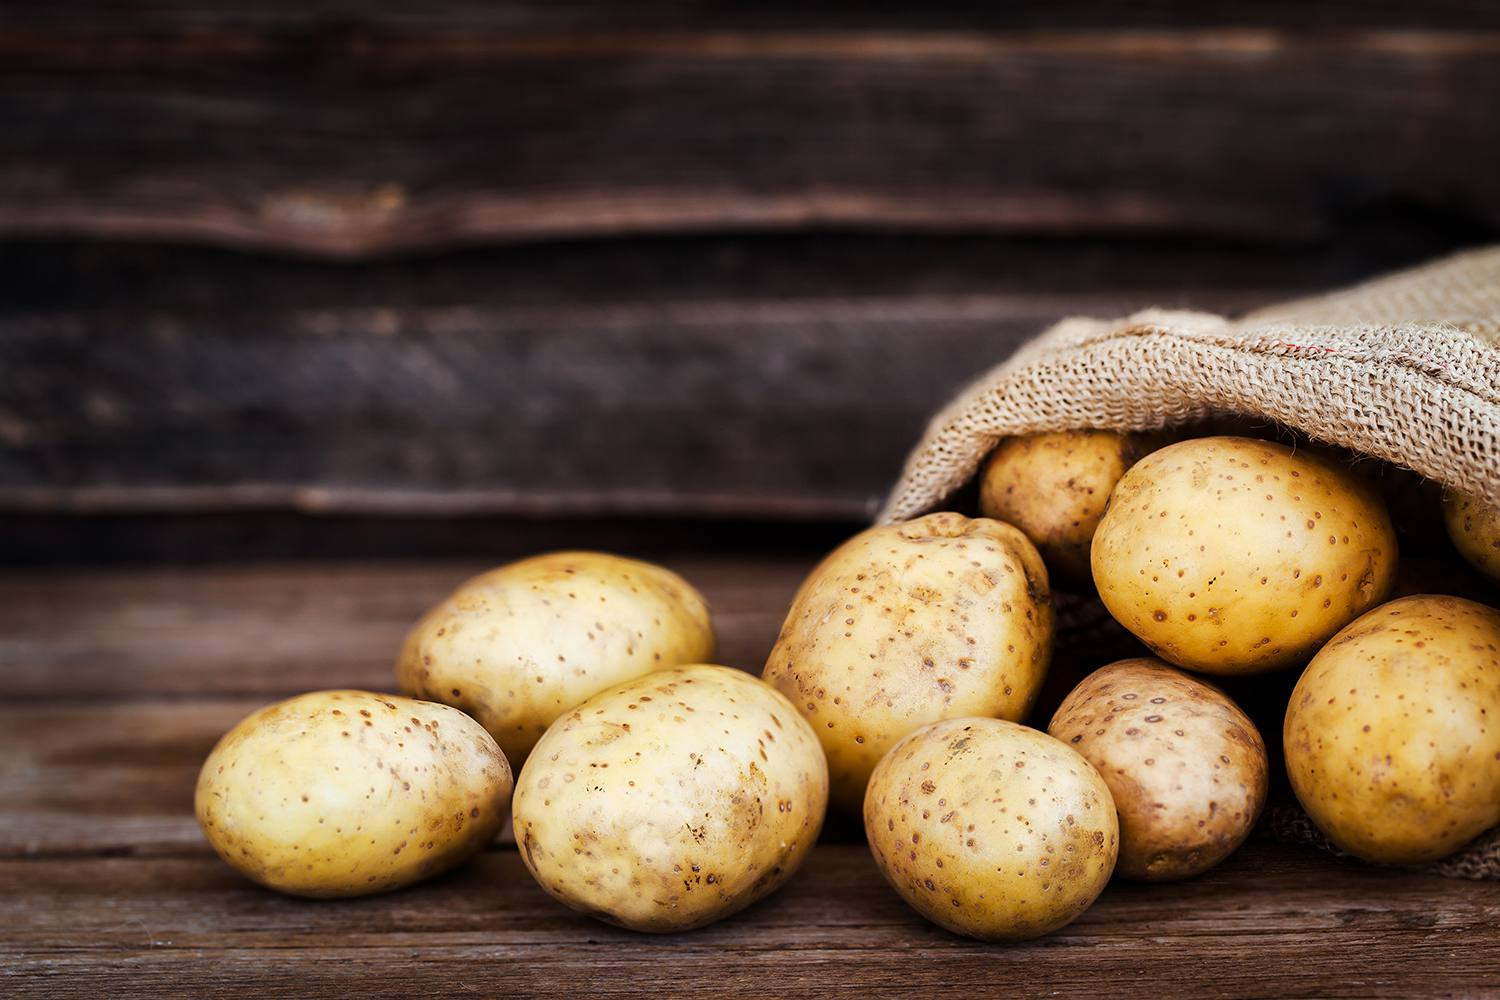 Raw fresh potatoes in the sack on wooden background